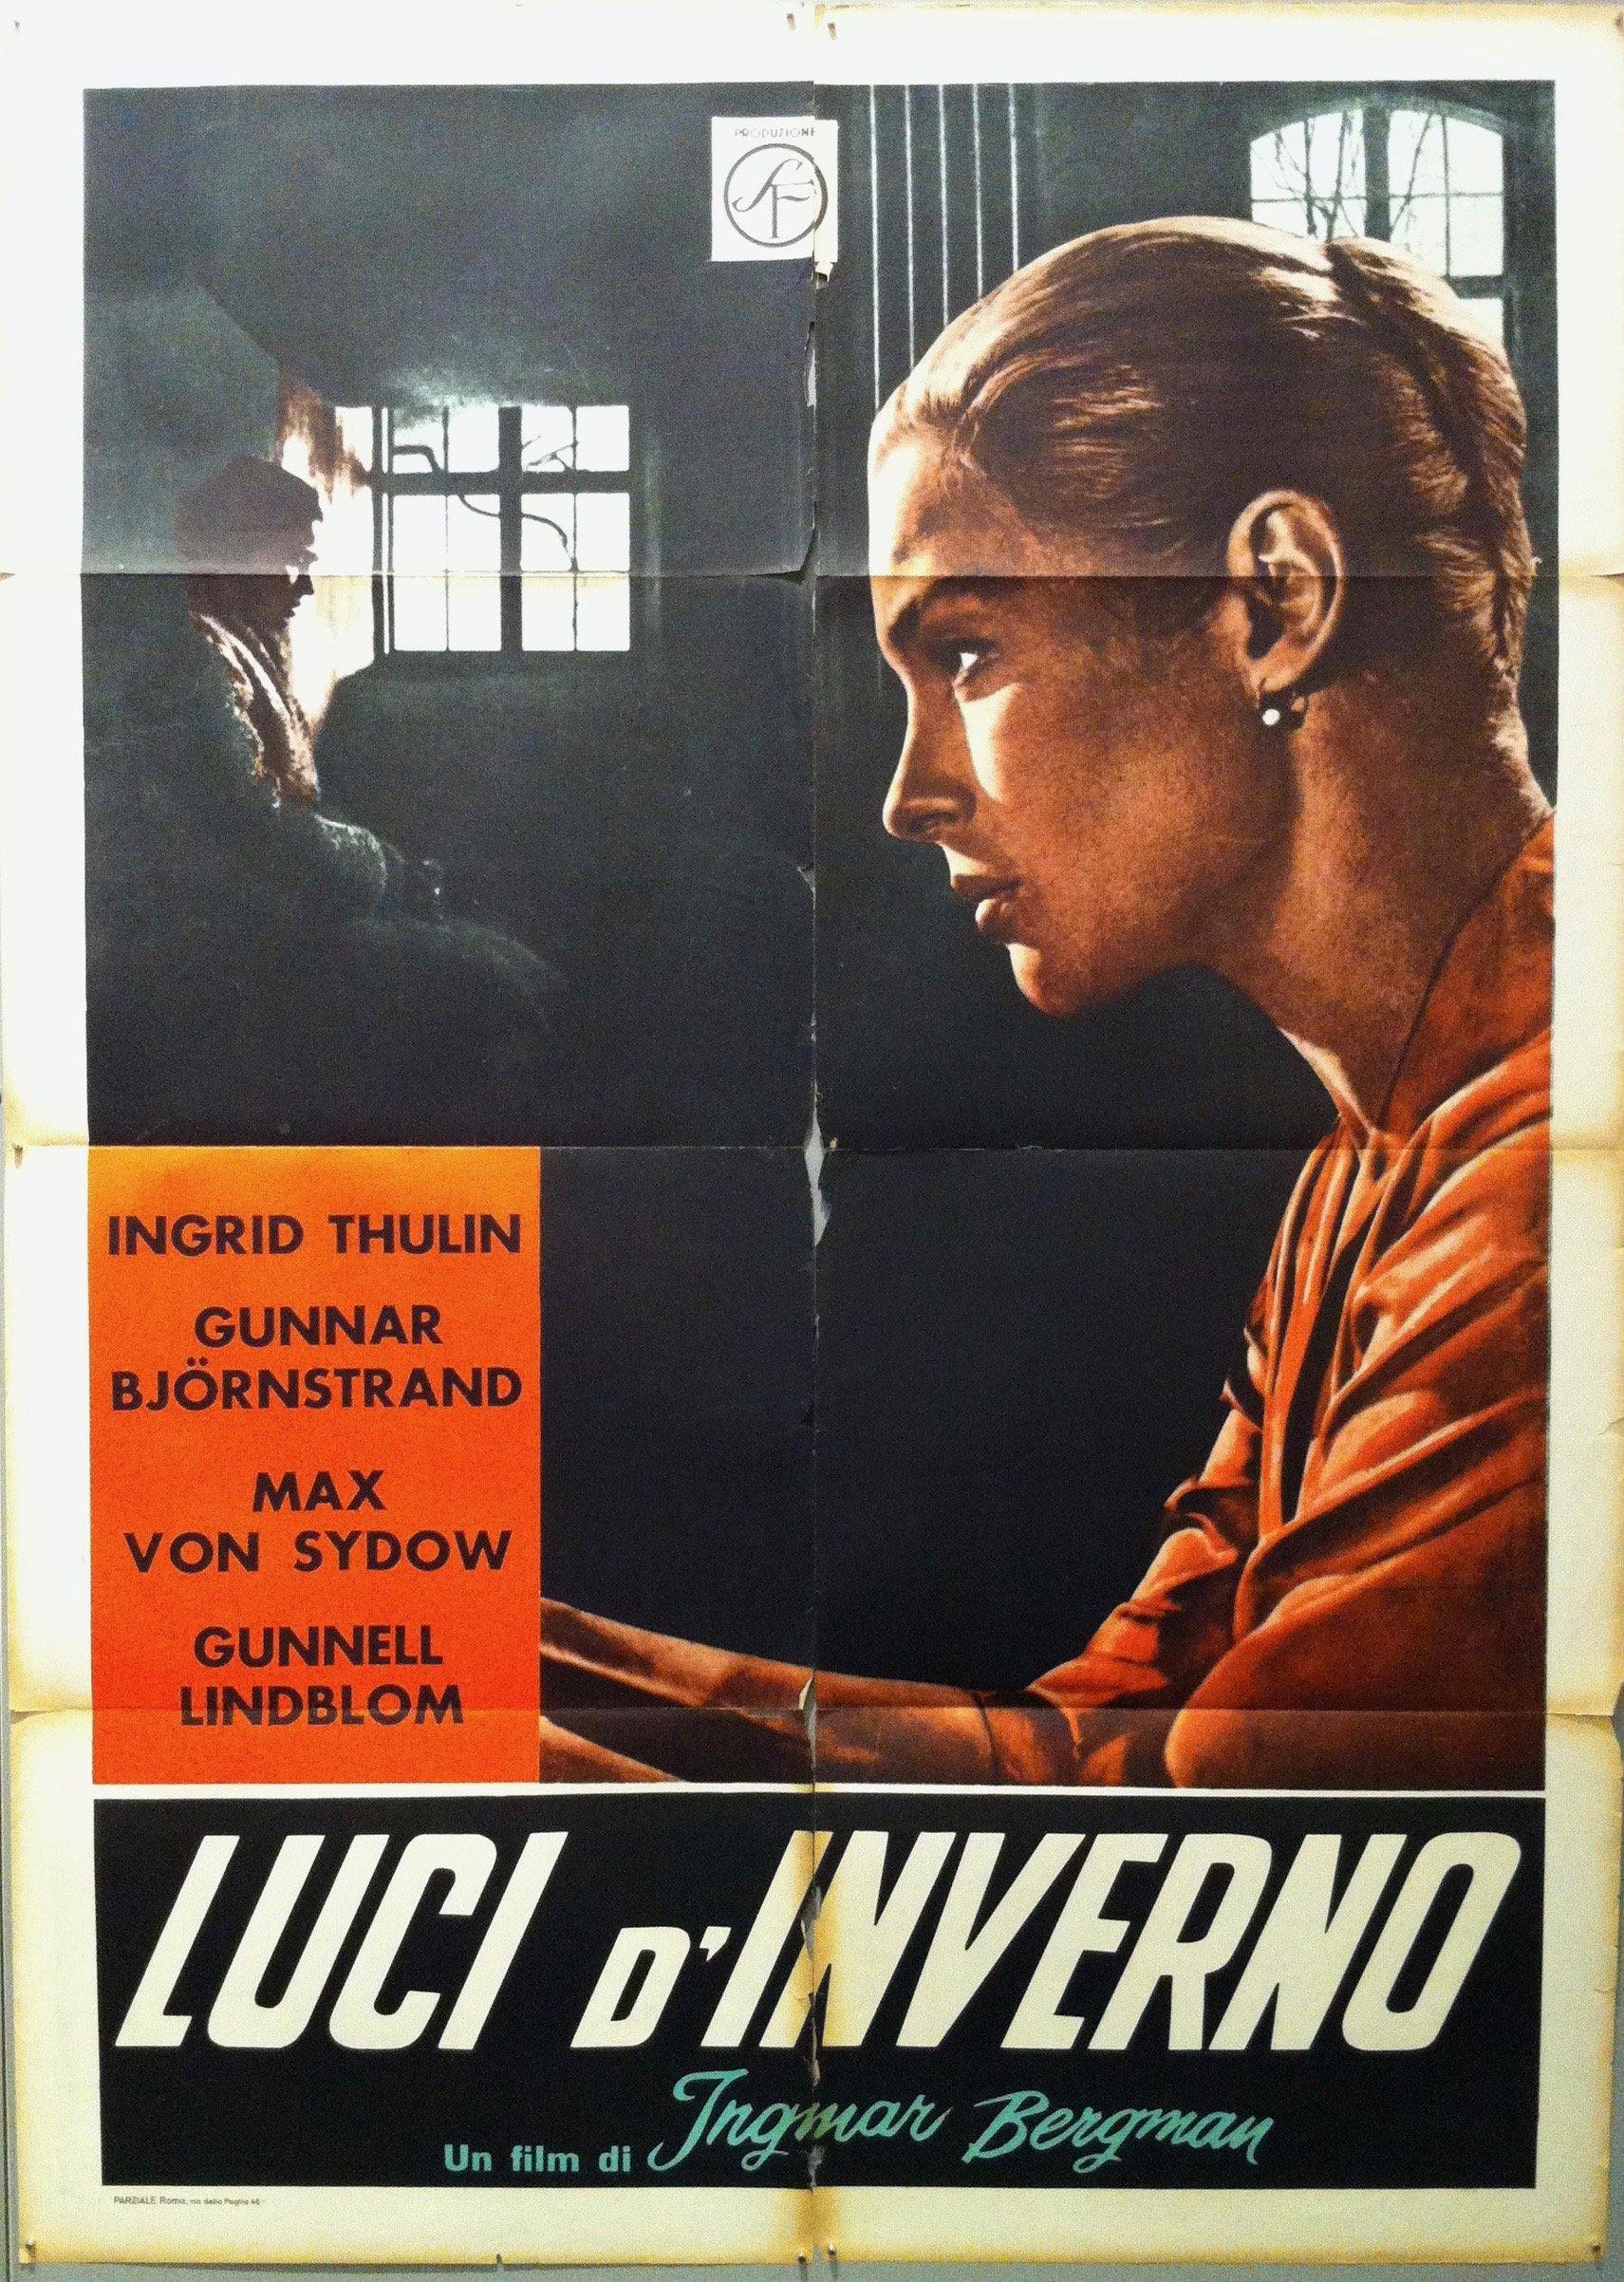 Luci d'inverno - Poster Museum